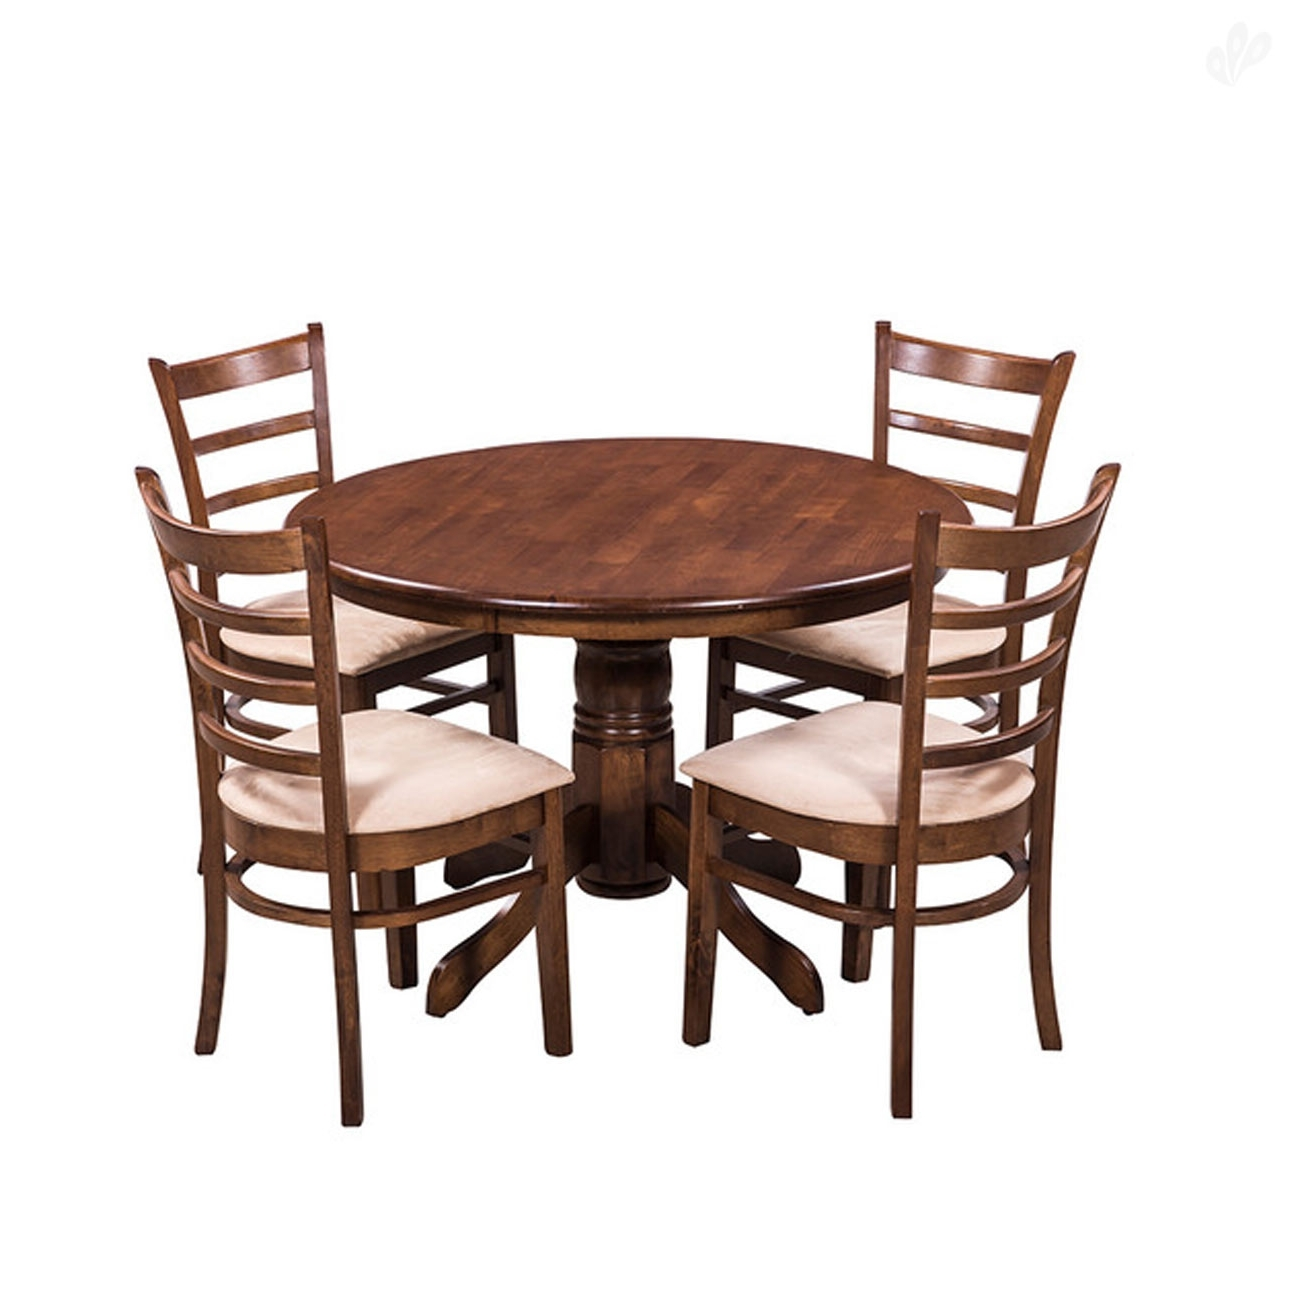 Buy Royaloak Coco Dining Table Set With 4 Chairs Solid Dining Chair In Trendy Cheap Oak Dining Sets (View 4 of 25)